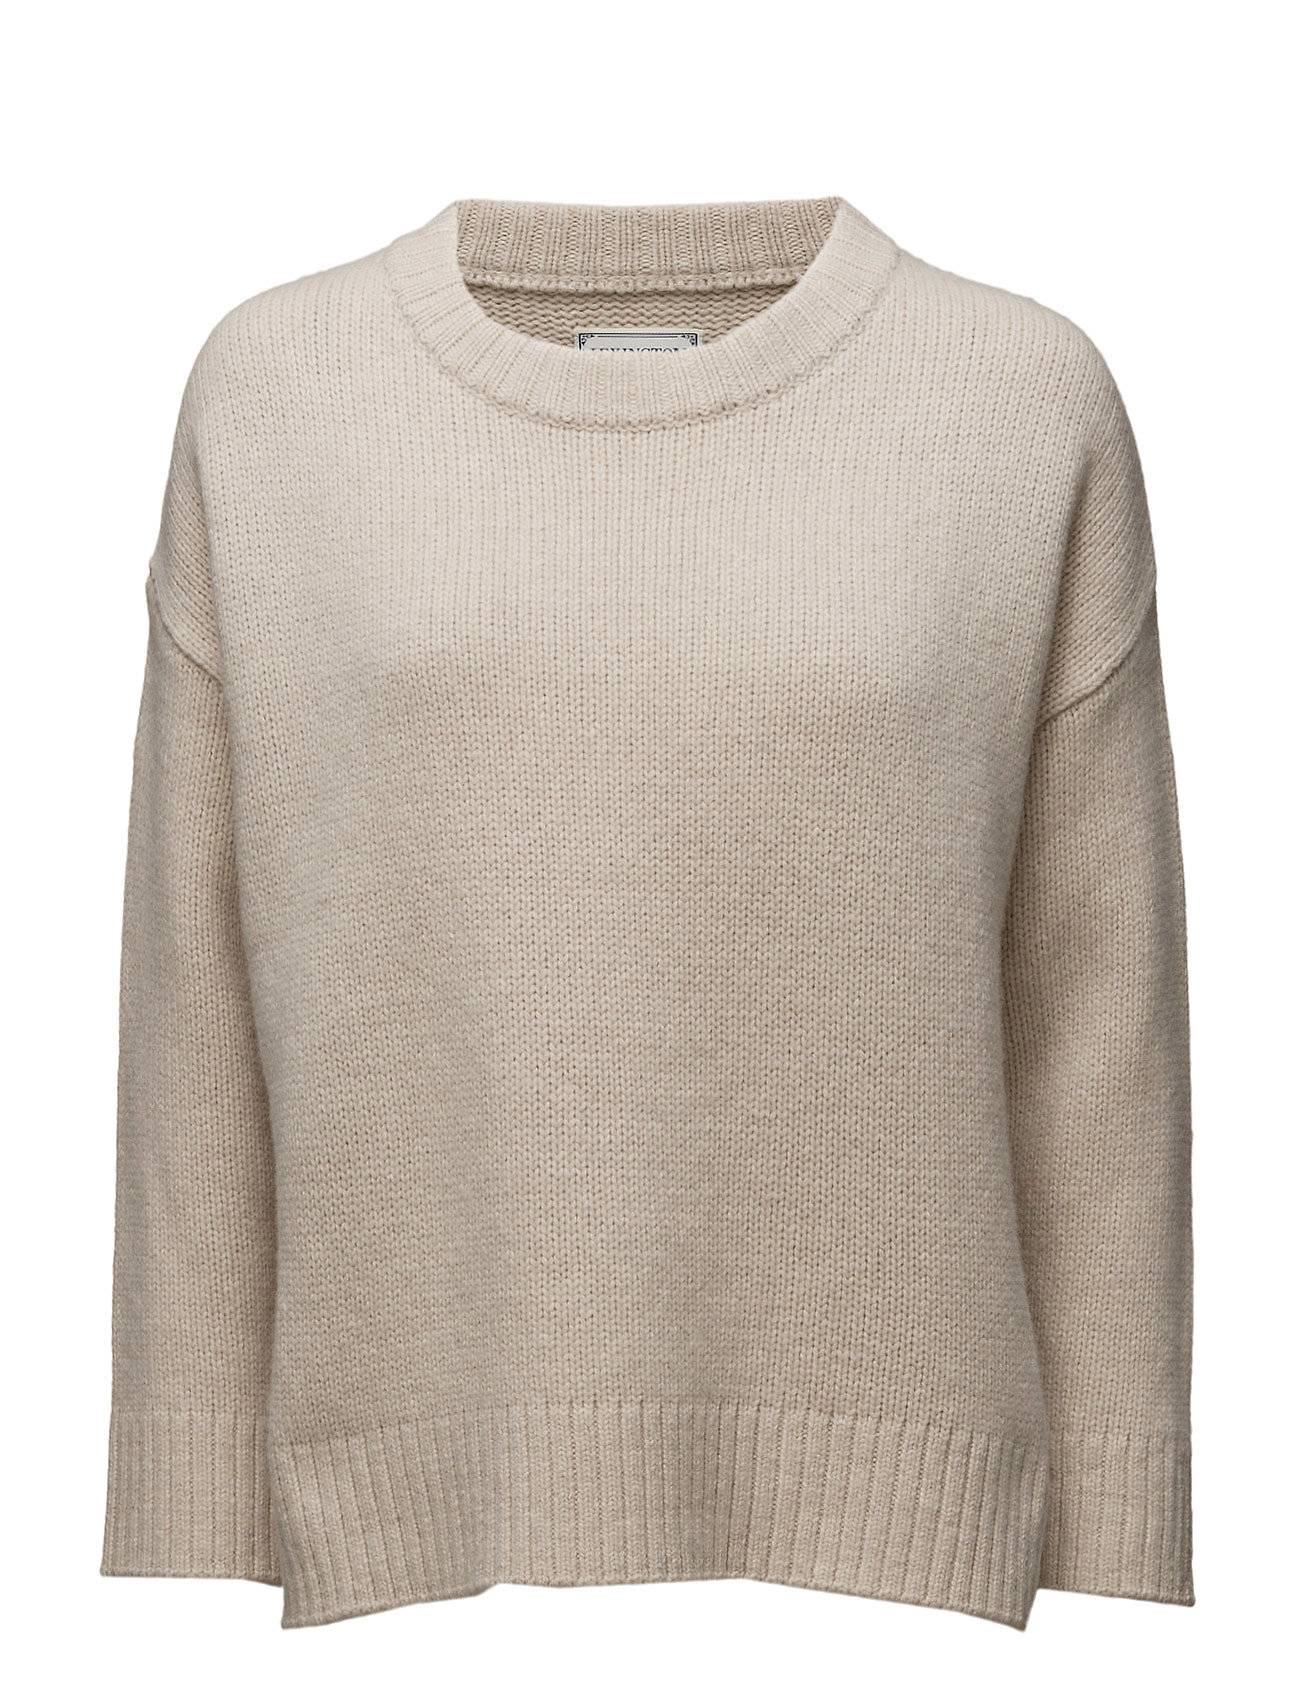 Lexington Company Amber Lee Sweater